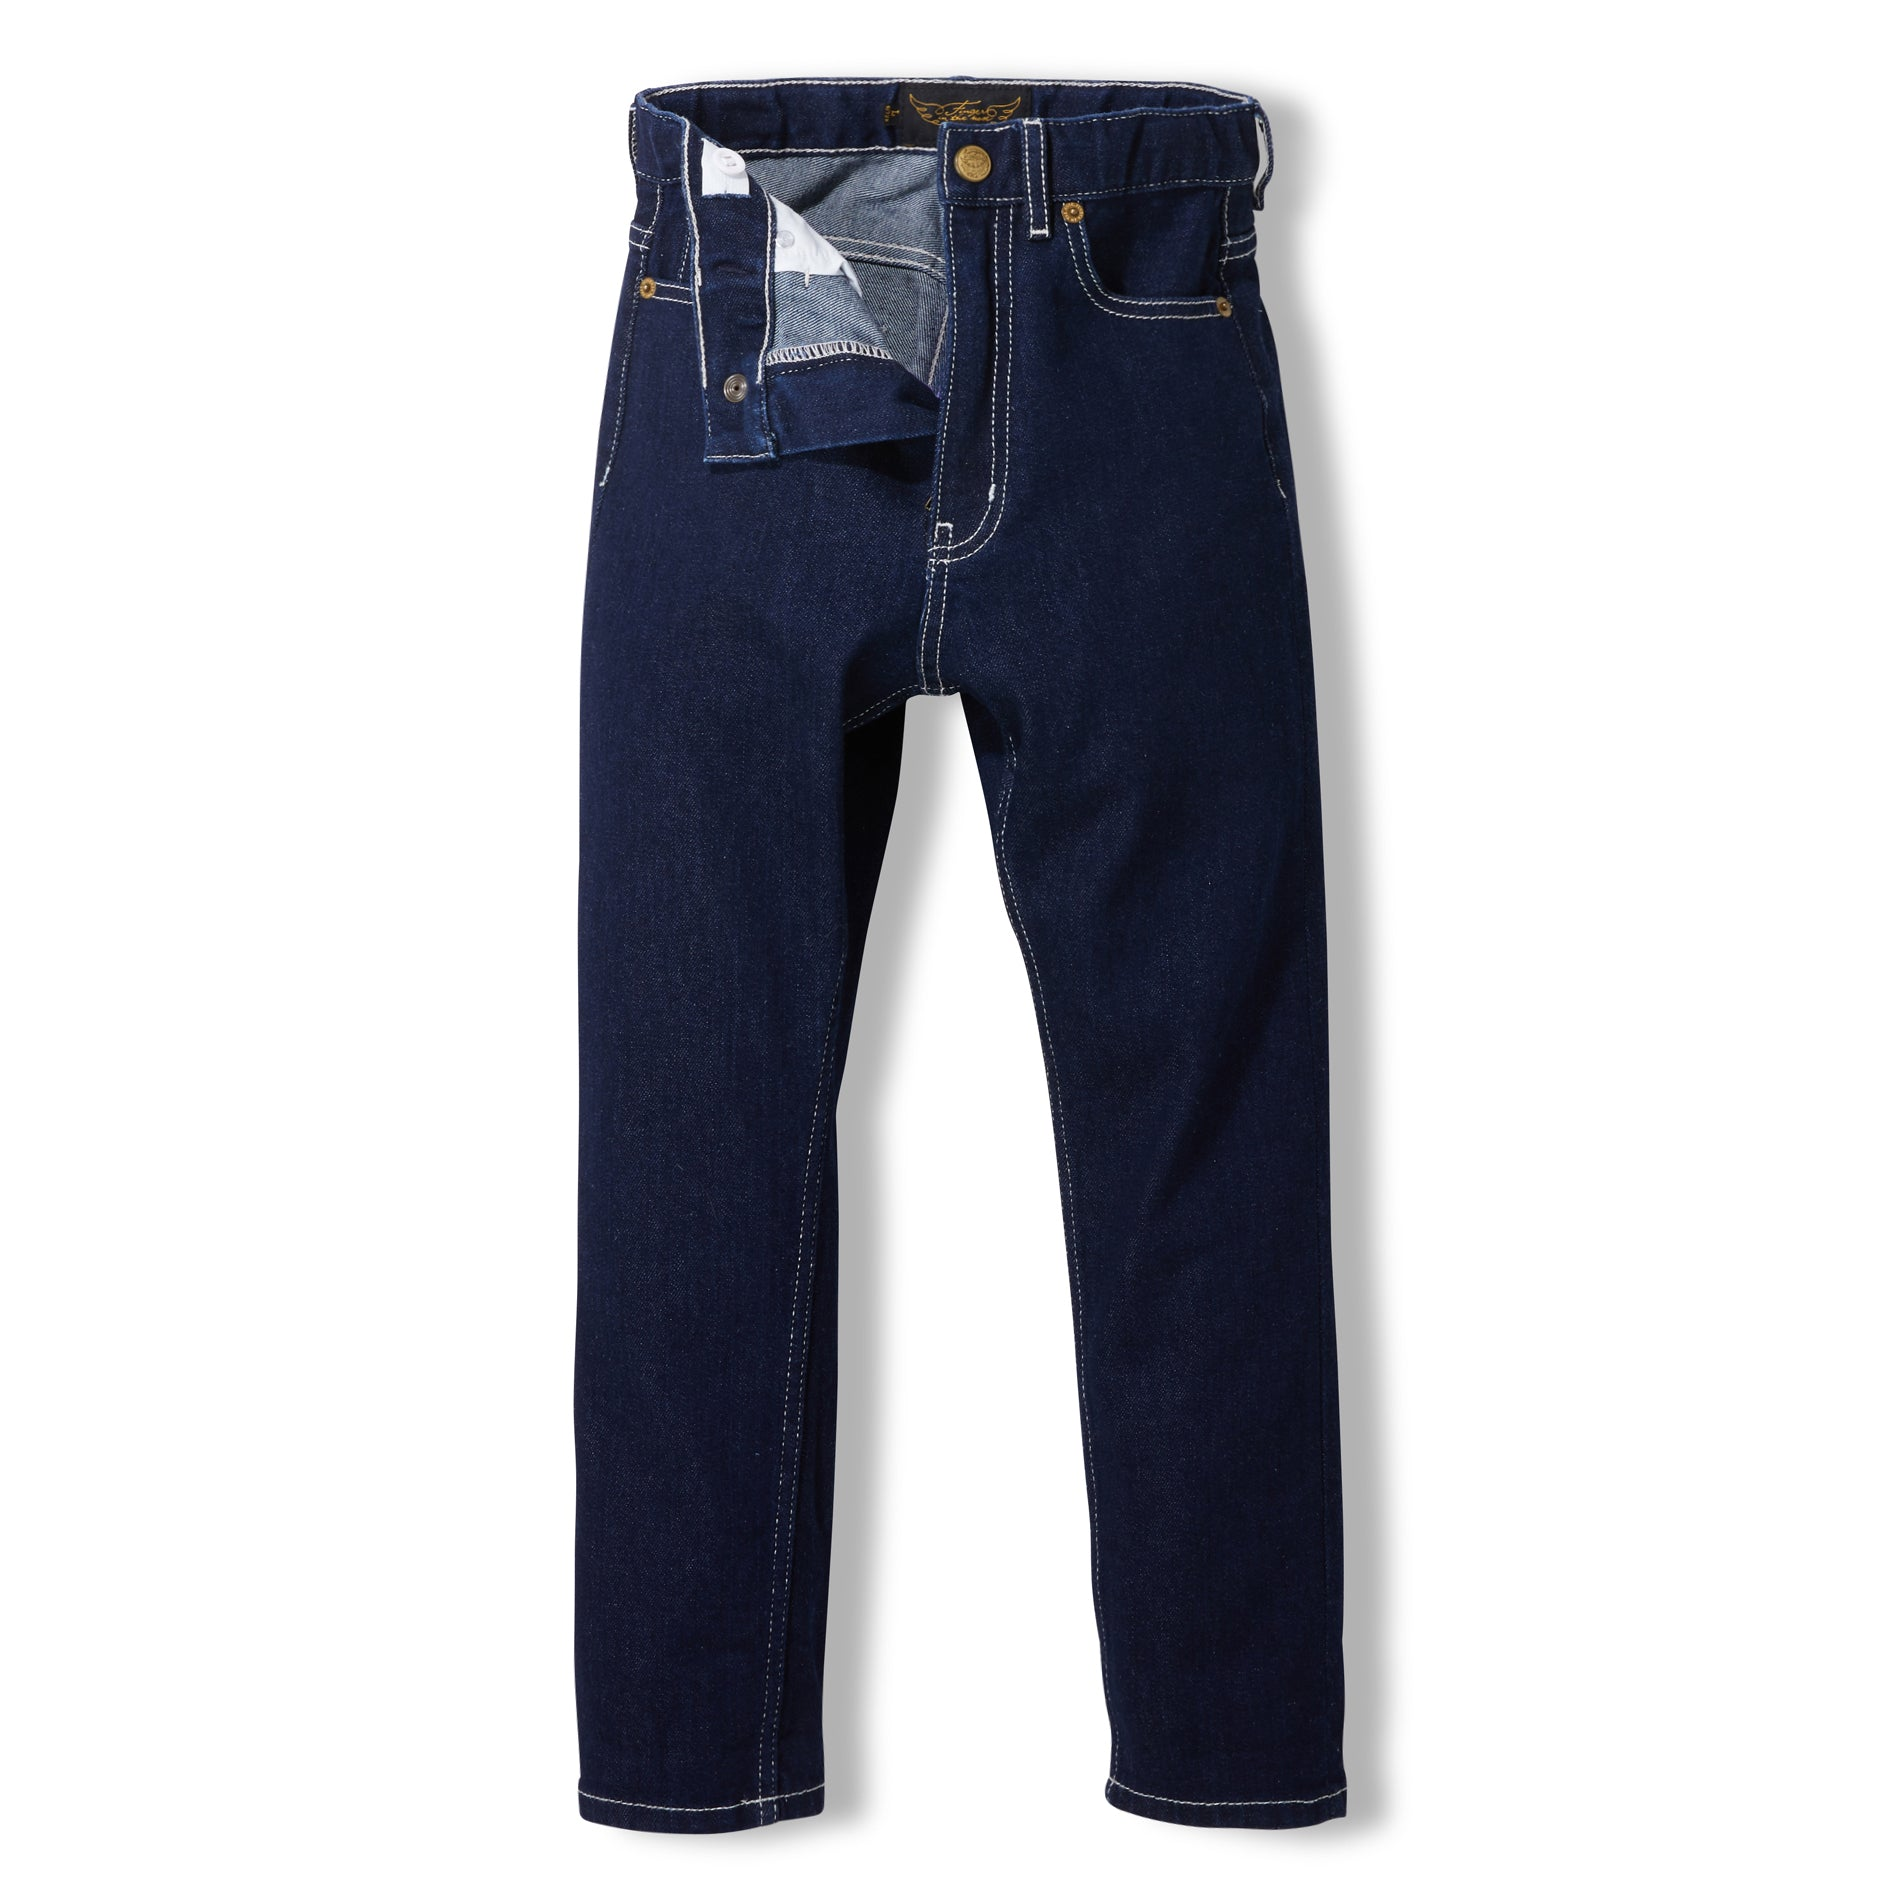 OLLIBIS Raw Denim Blue -  Woven 5 Pockets Tapered Fit Jeans